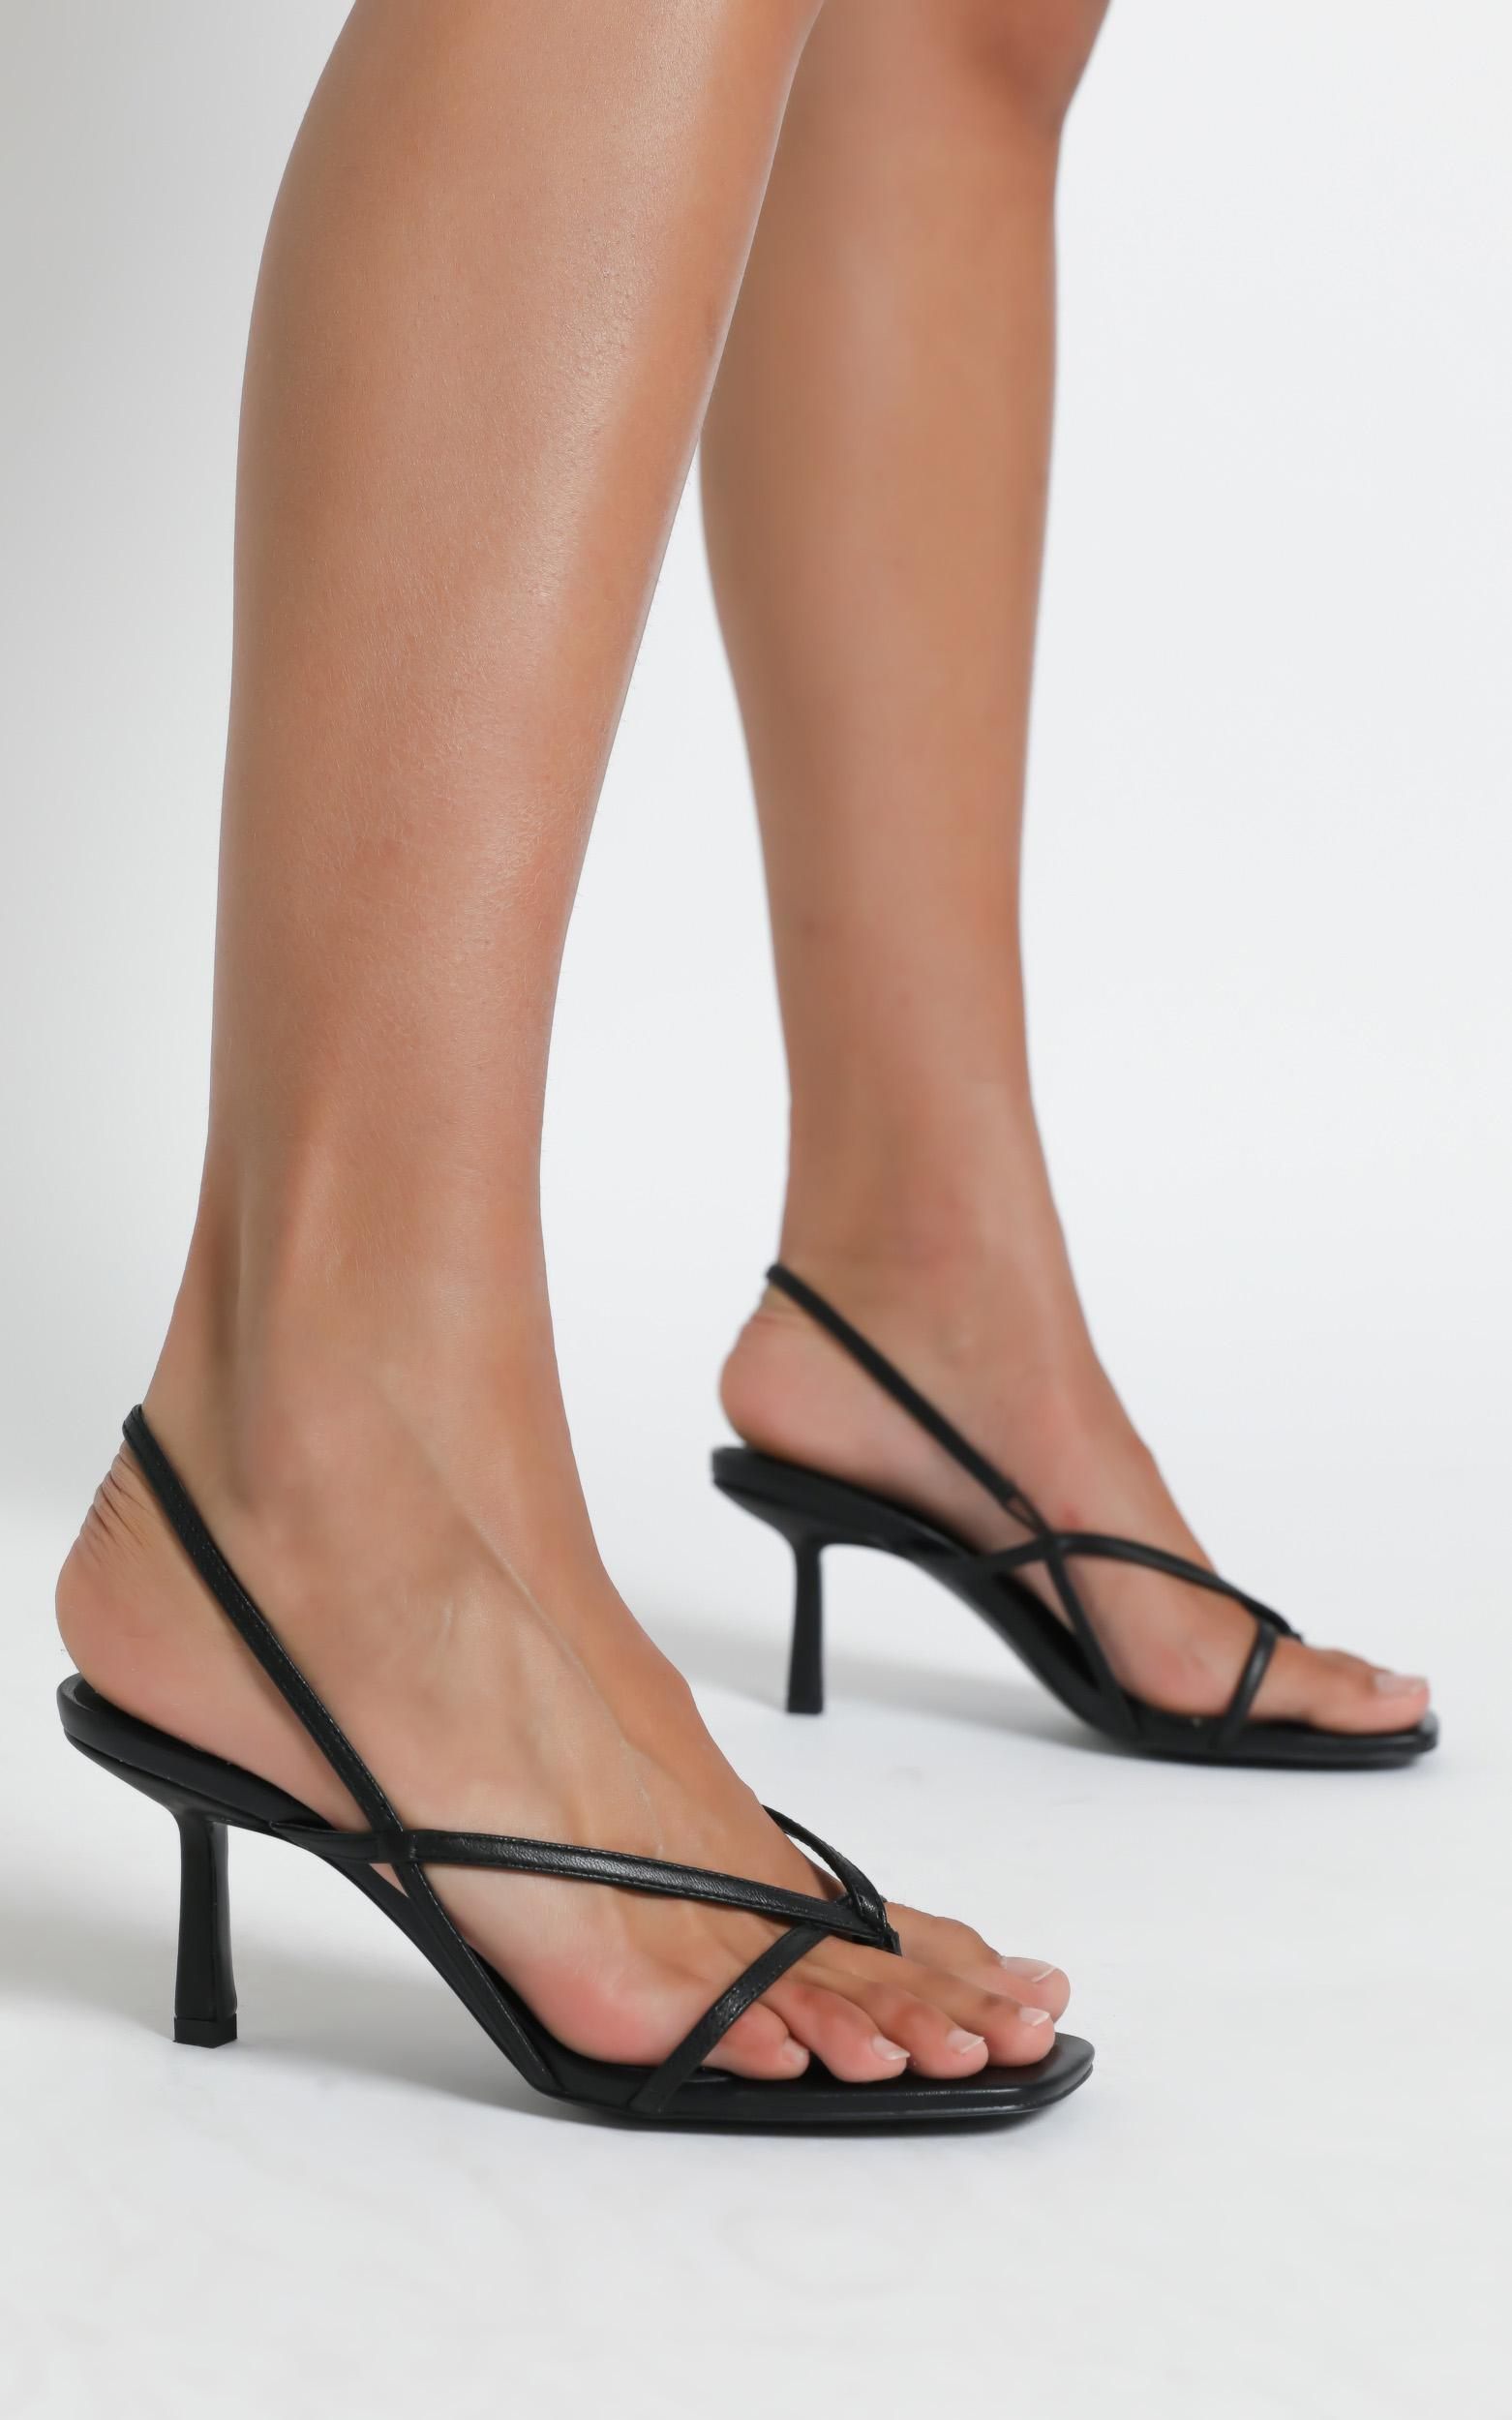 Alias Mae - Lilo Heel in Black Kid Leather  - 5.5, BLK1, hi-res image number null